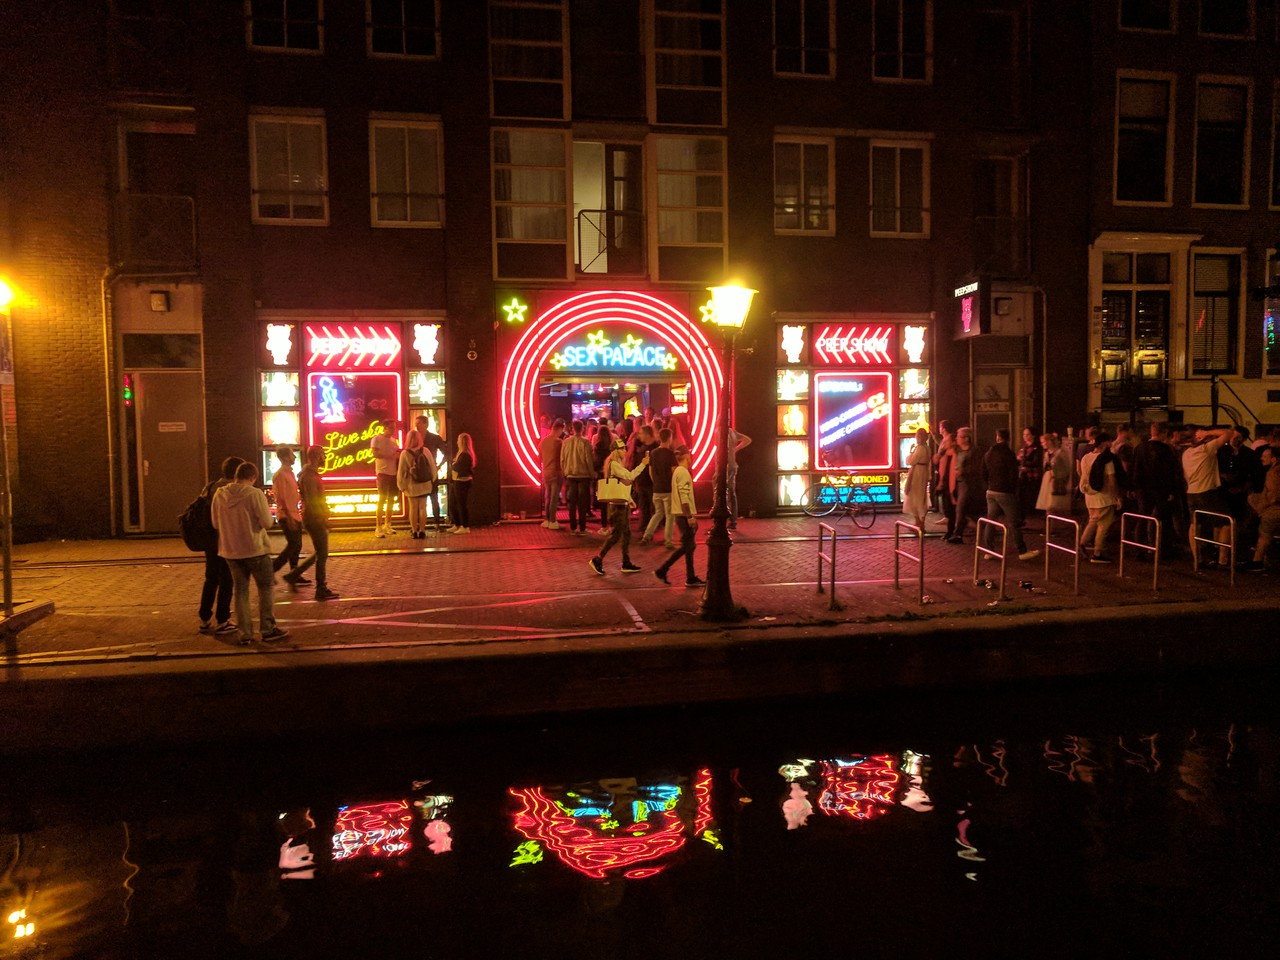 1012 DT Amsterdam, Netherlands @ 11PM Friday, 25 August 2017